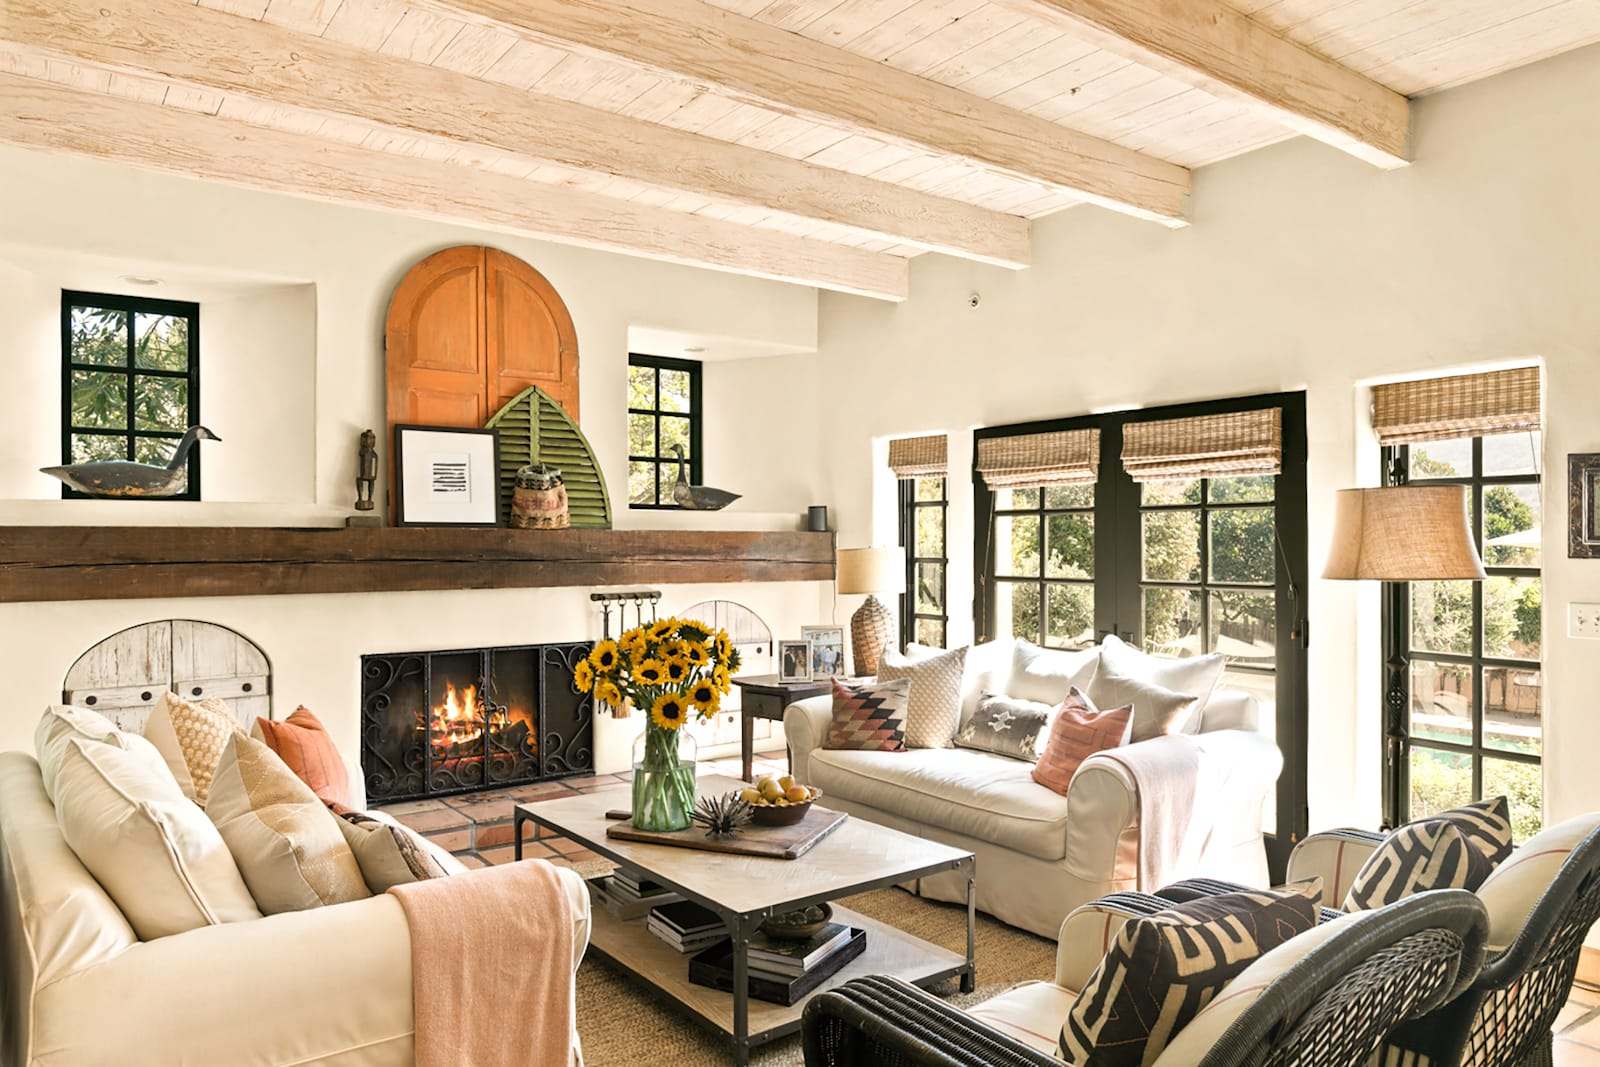 cindy hattersley's great room in her california home